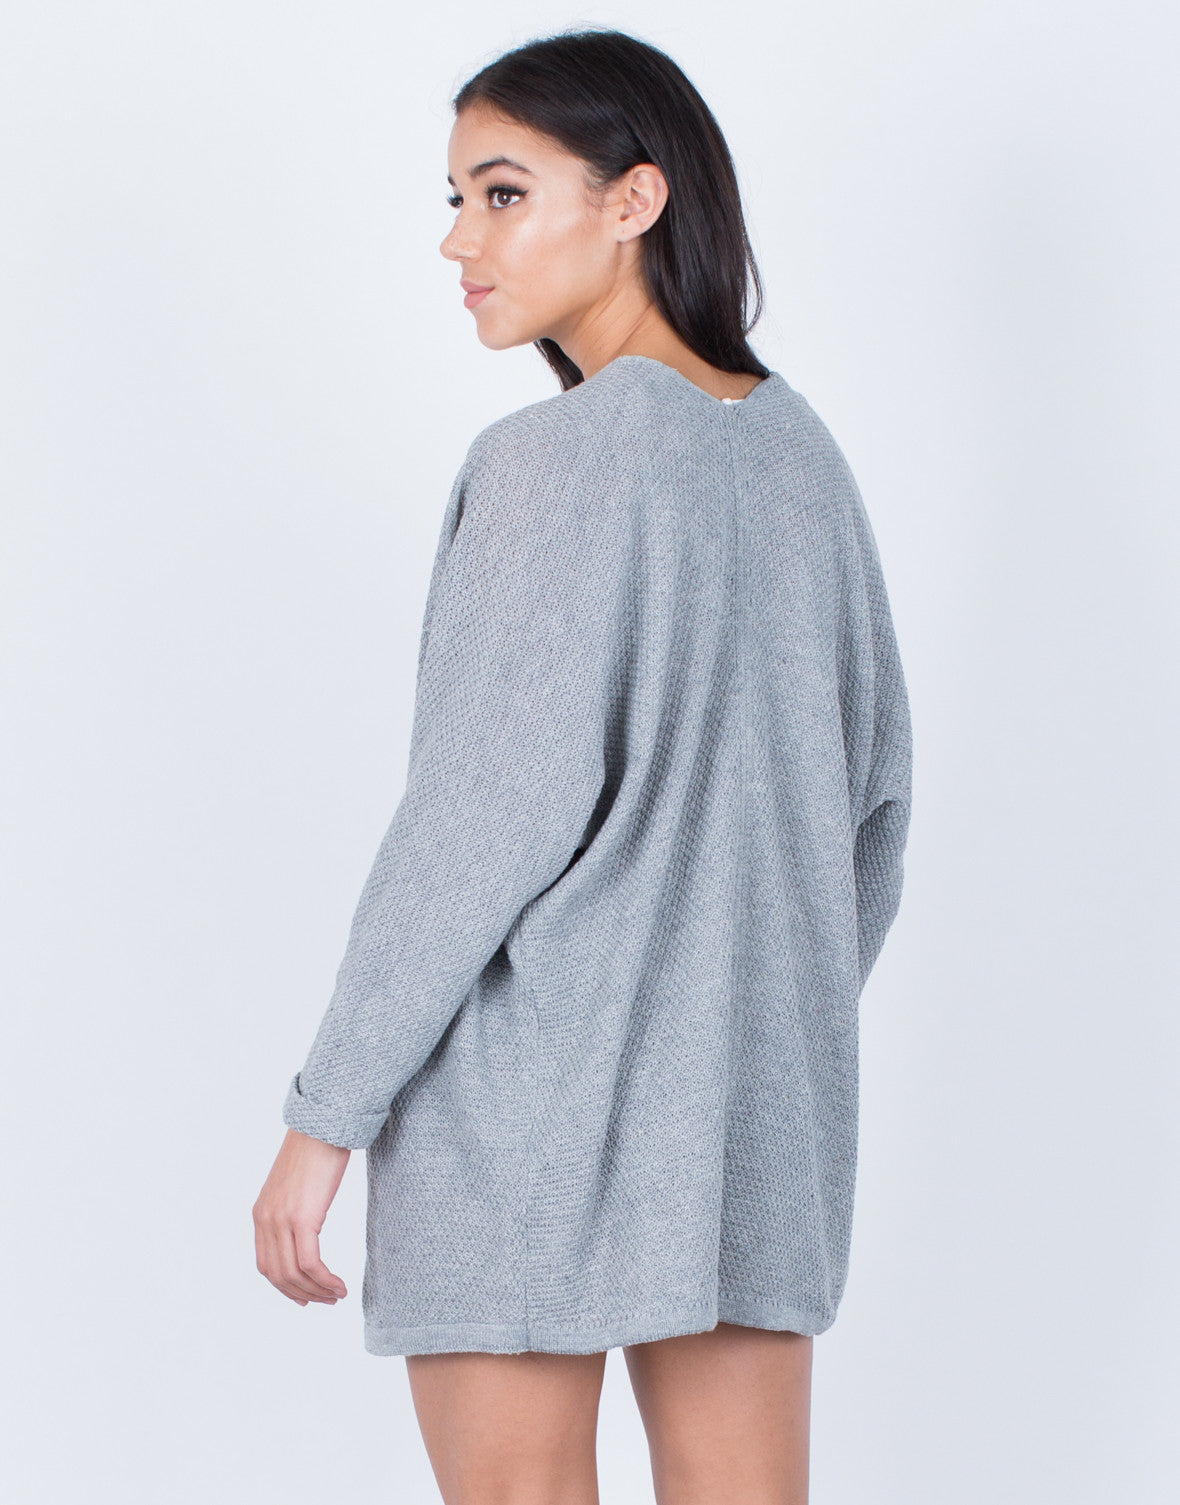 Back View of Your Everyday Cardigan